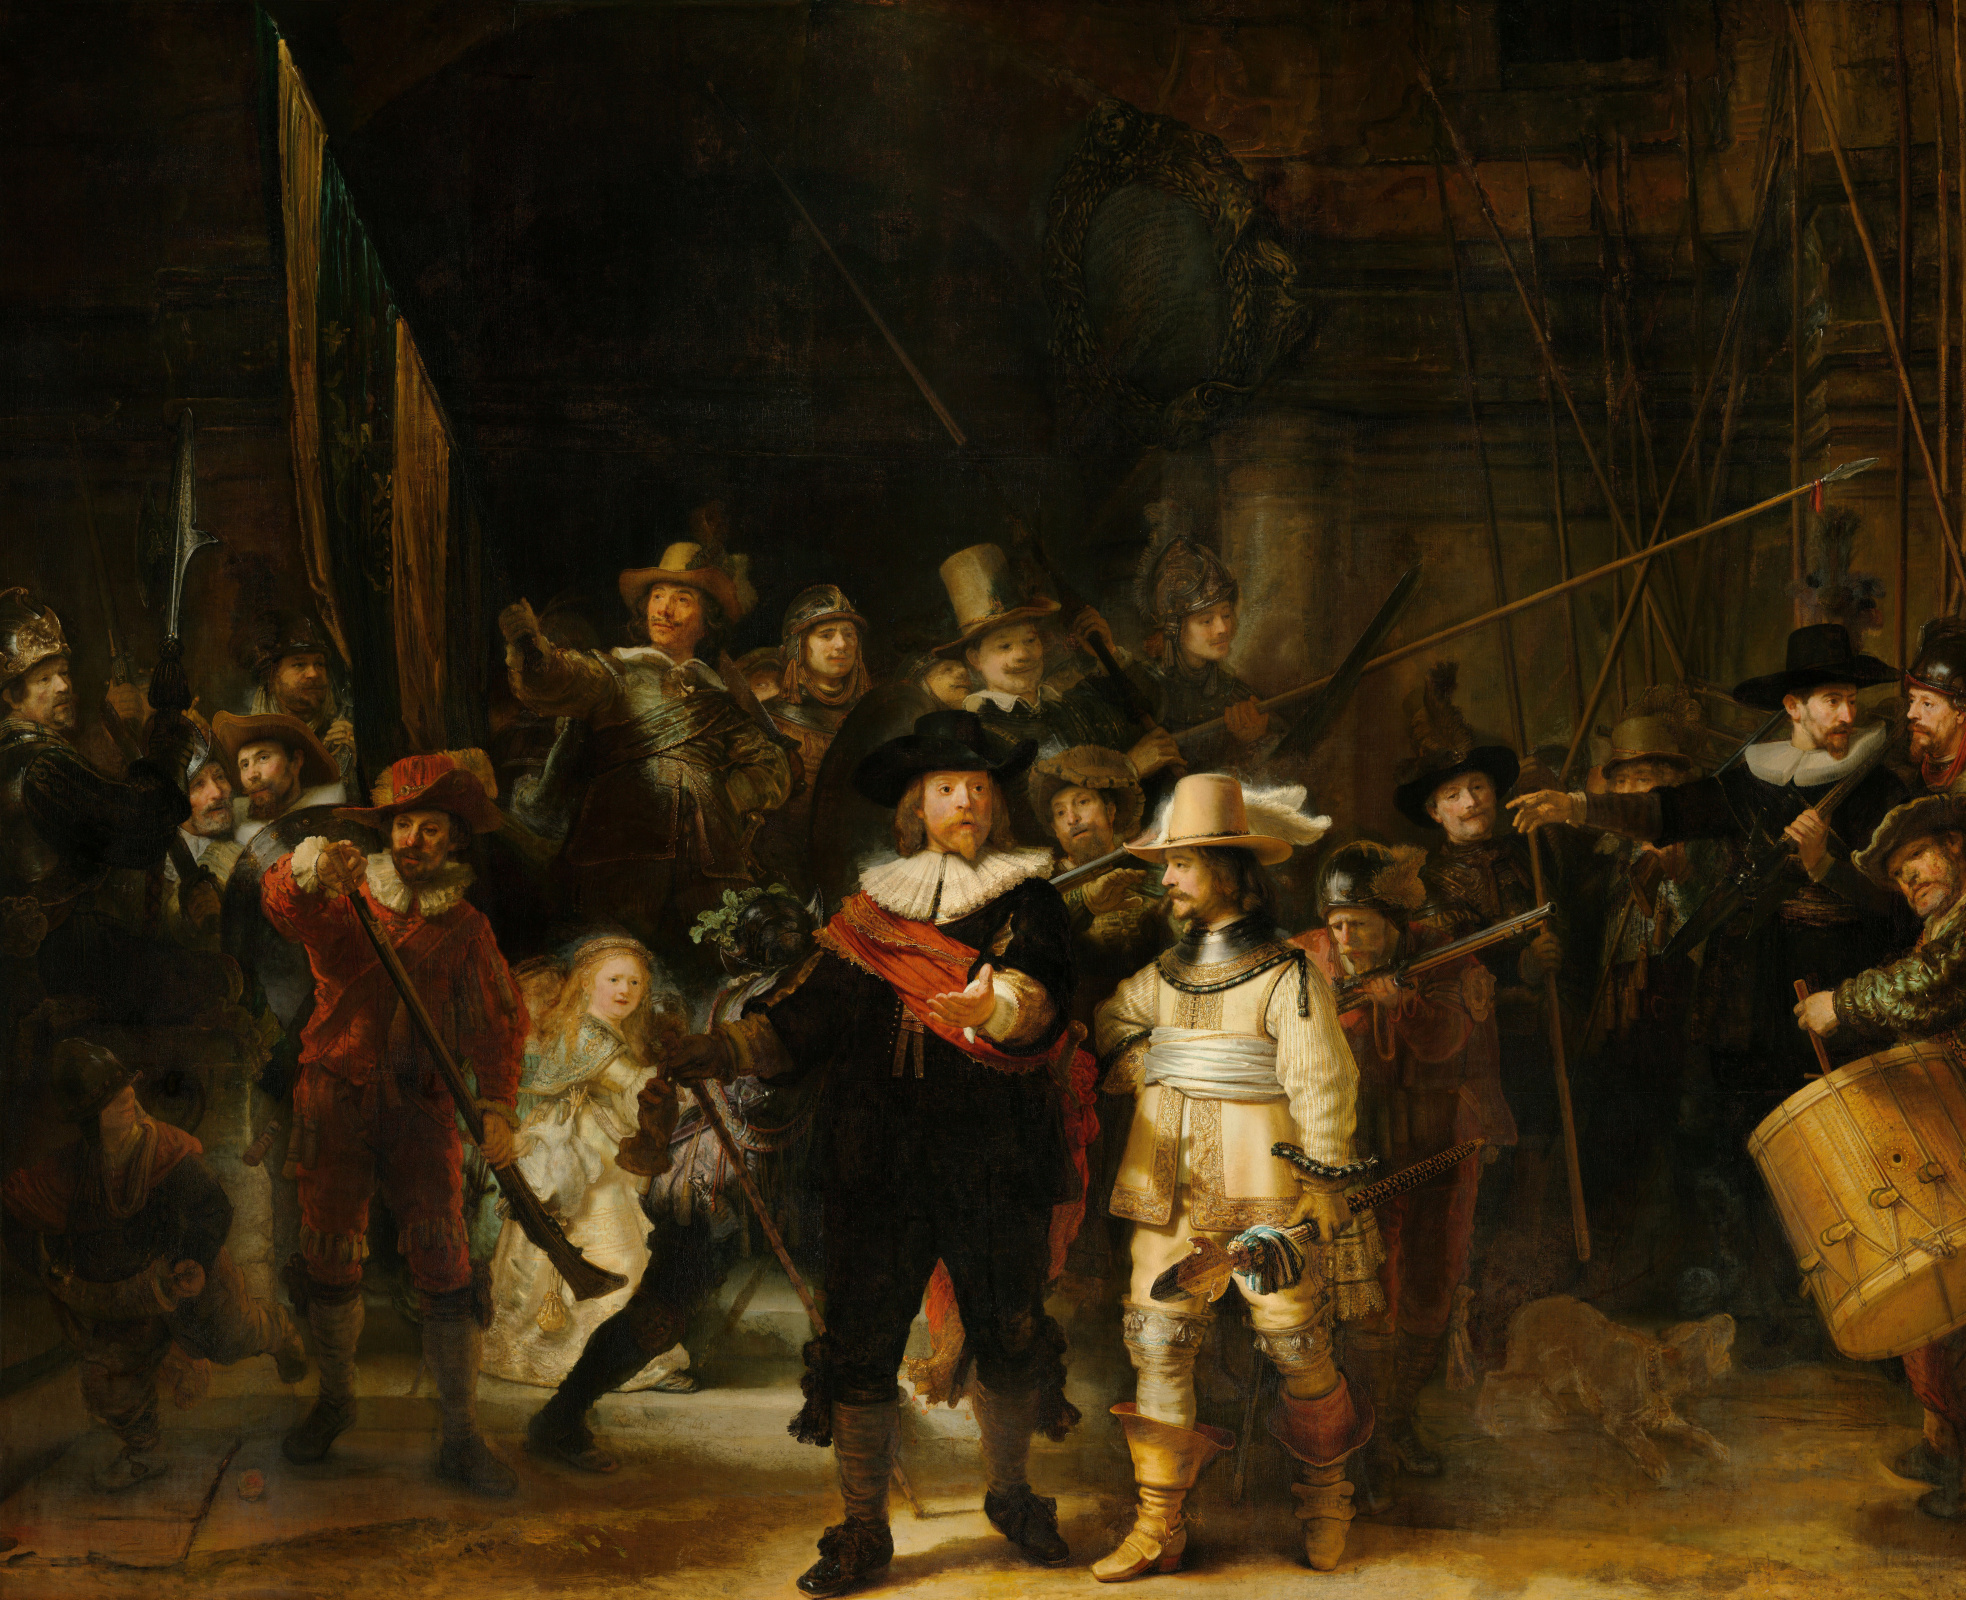 Rembrandt Harmenszoon van Rijn. The night watch, or The Shooting Company of Frans Banning Cocq and Willem van Ruytenburch